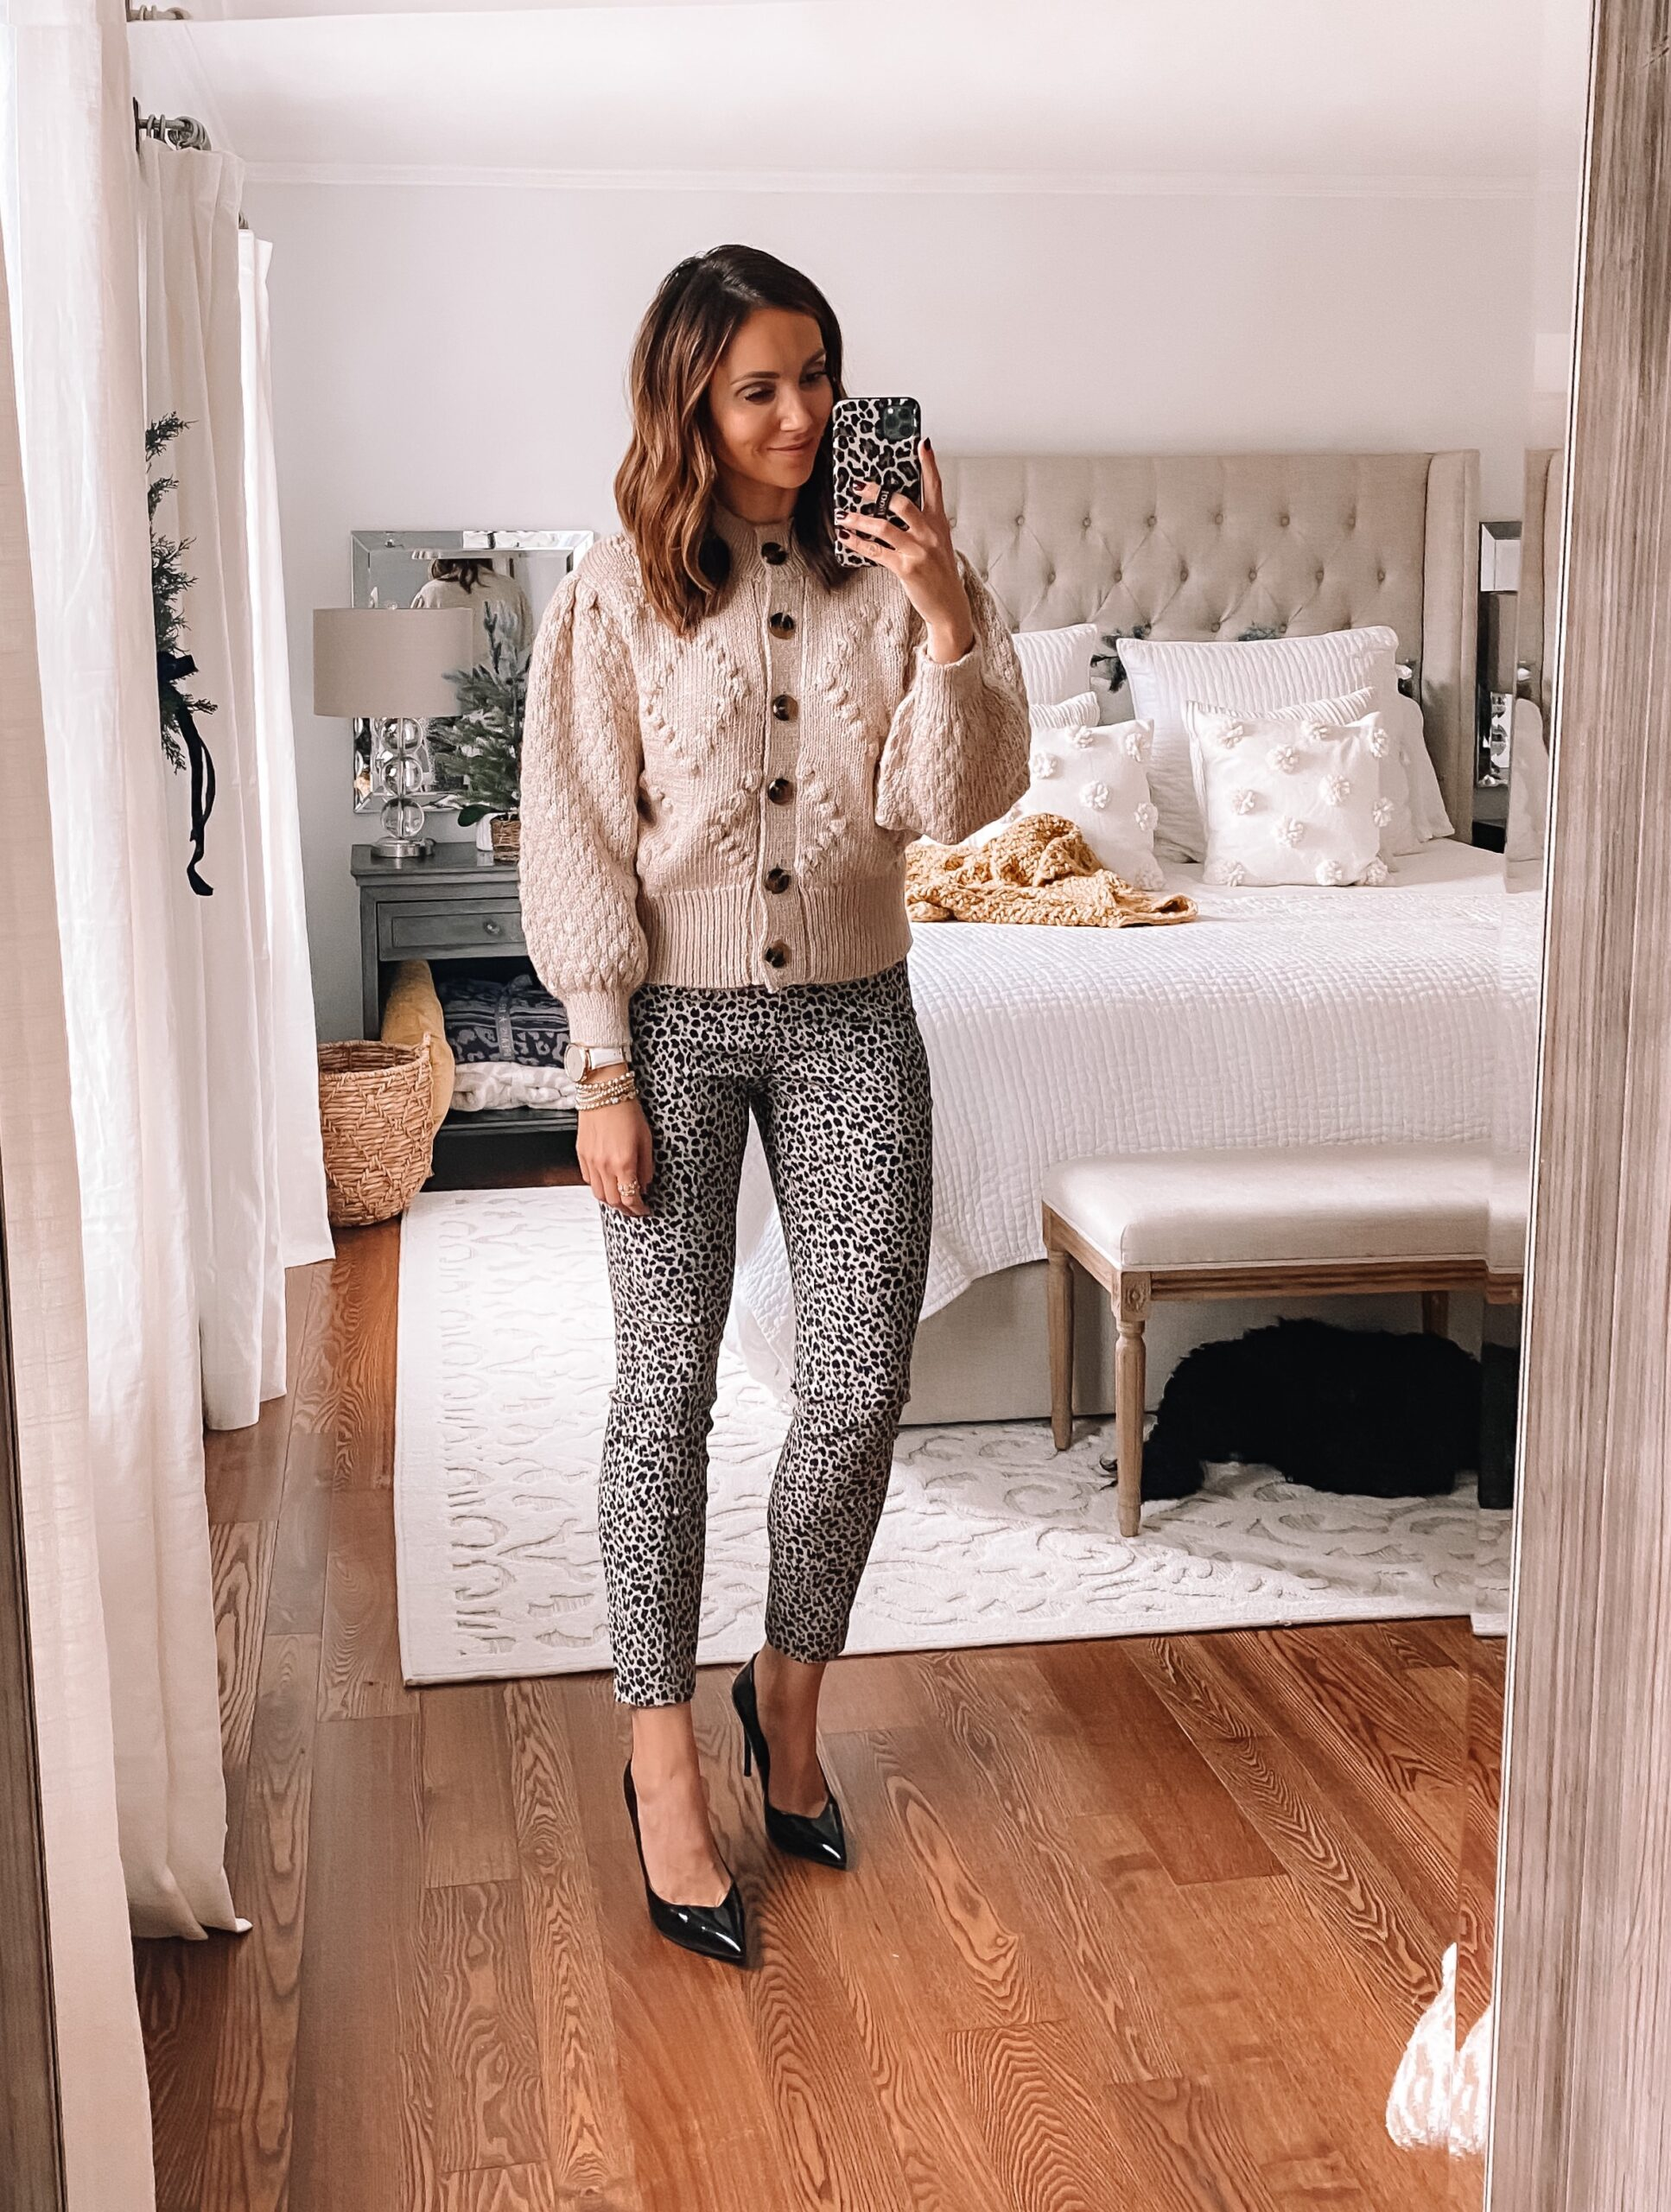 target style, workwear, leopard pants with cardigan